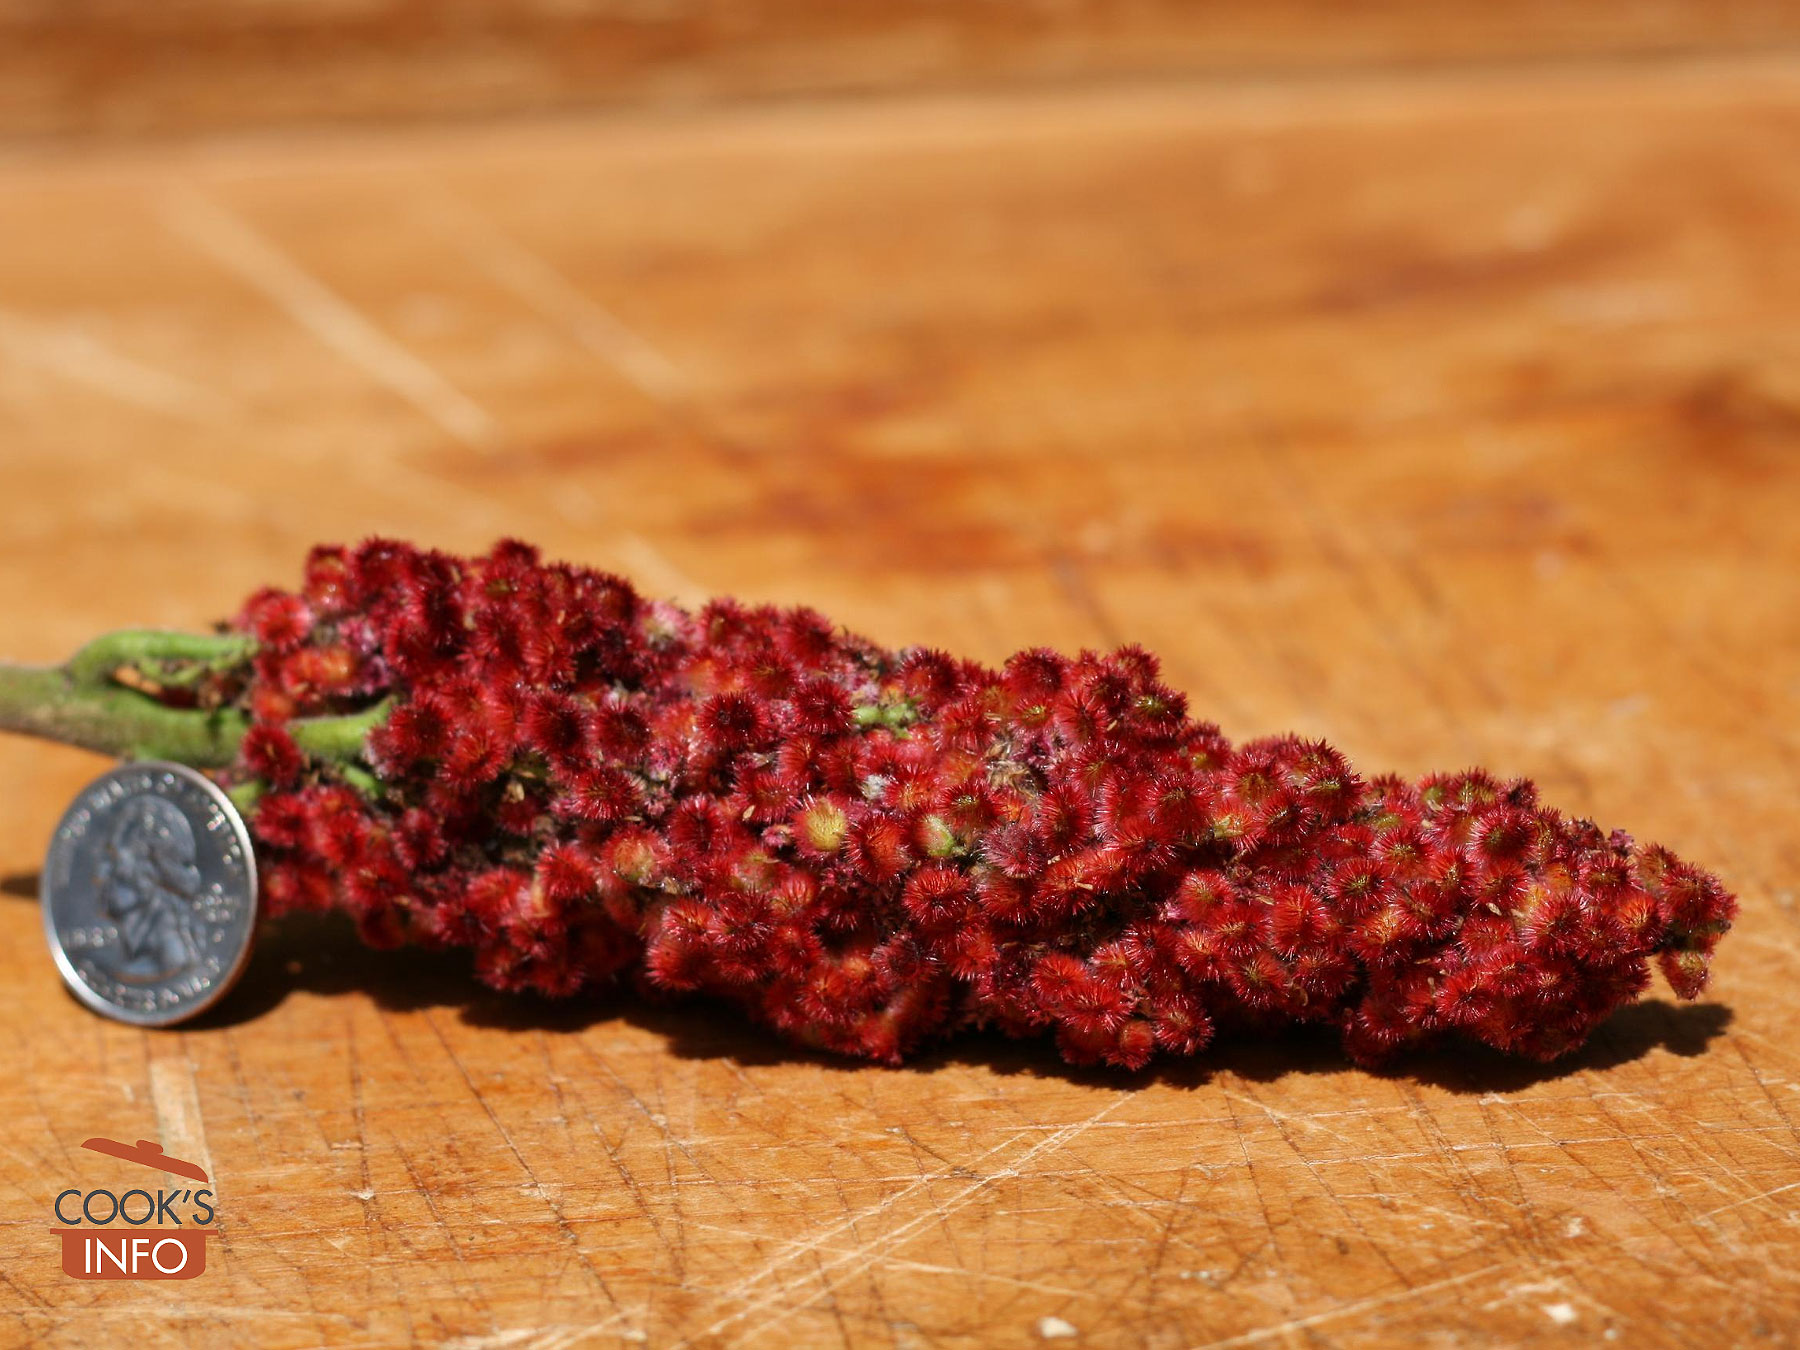 Staghorn sumac berries